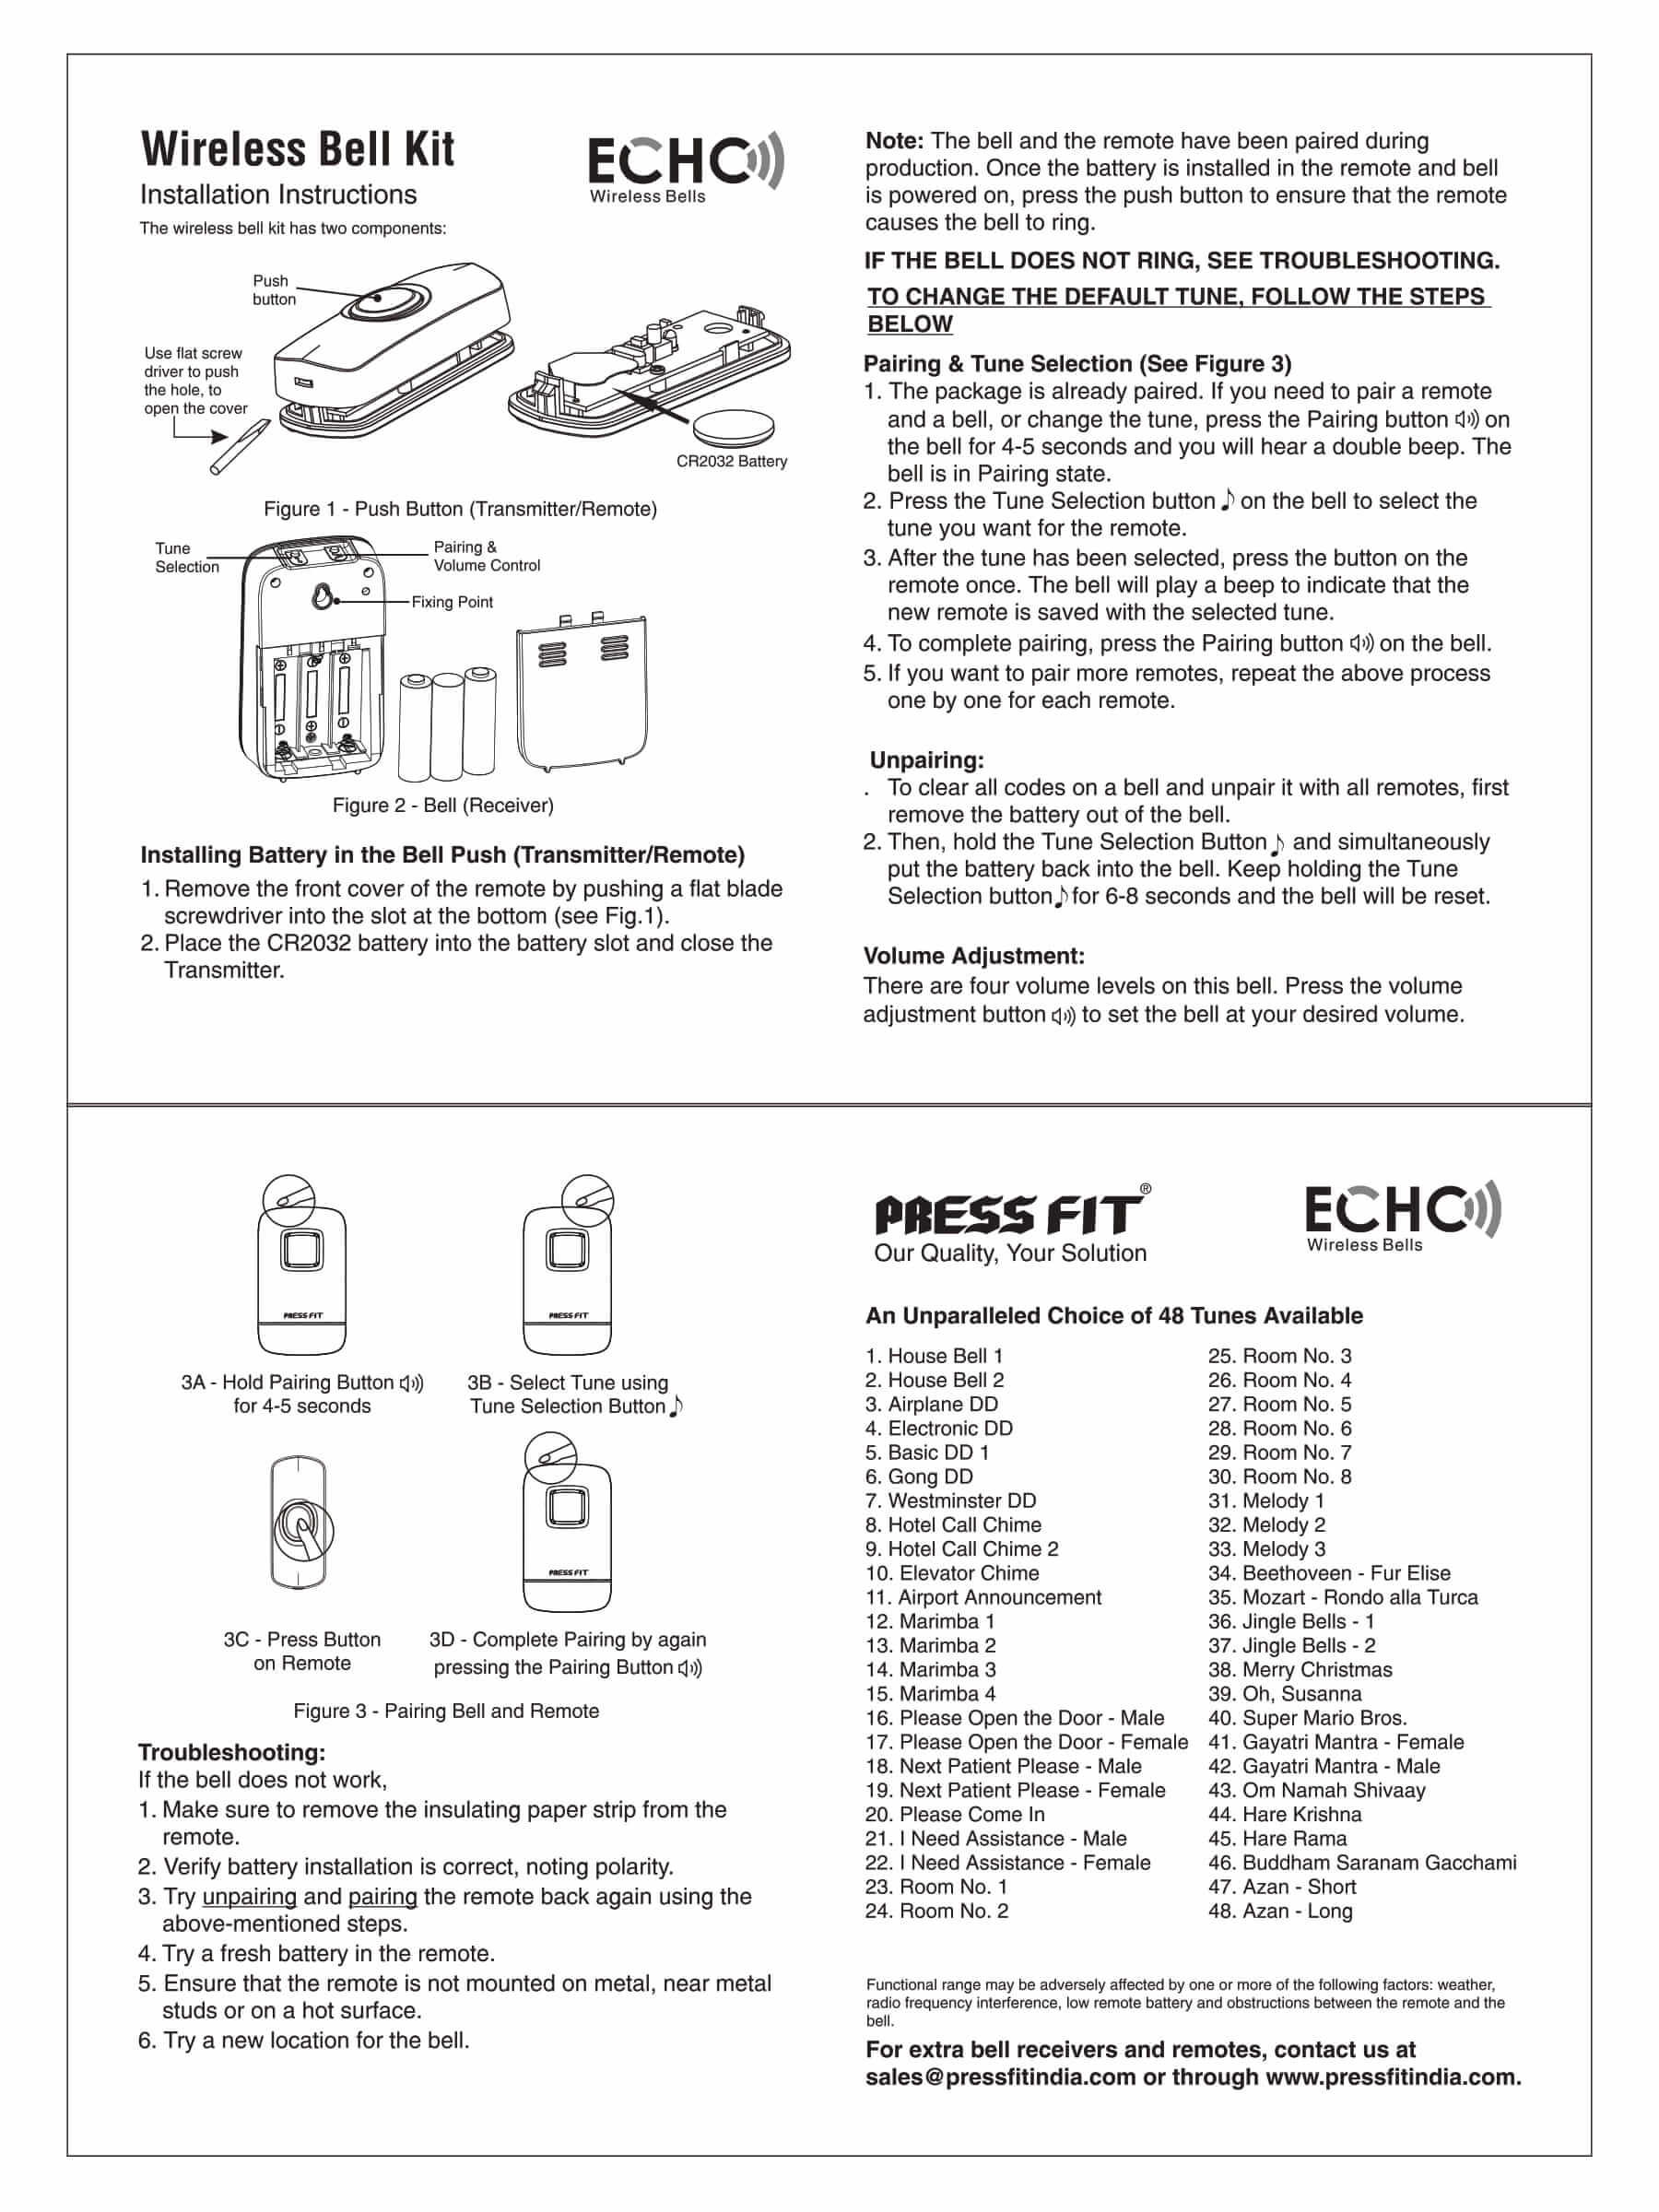 Echo-4-Instruction-Manual-1